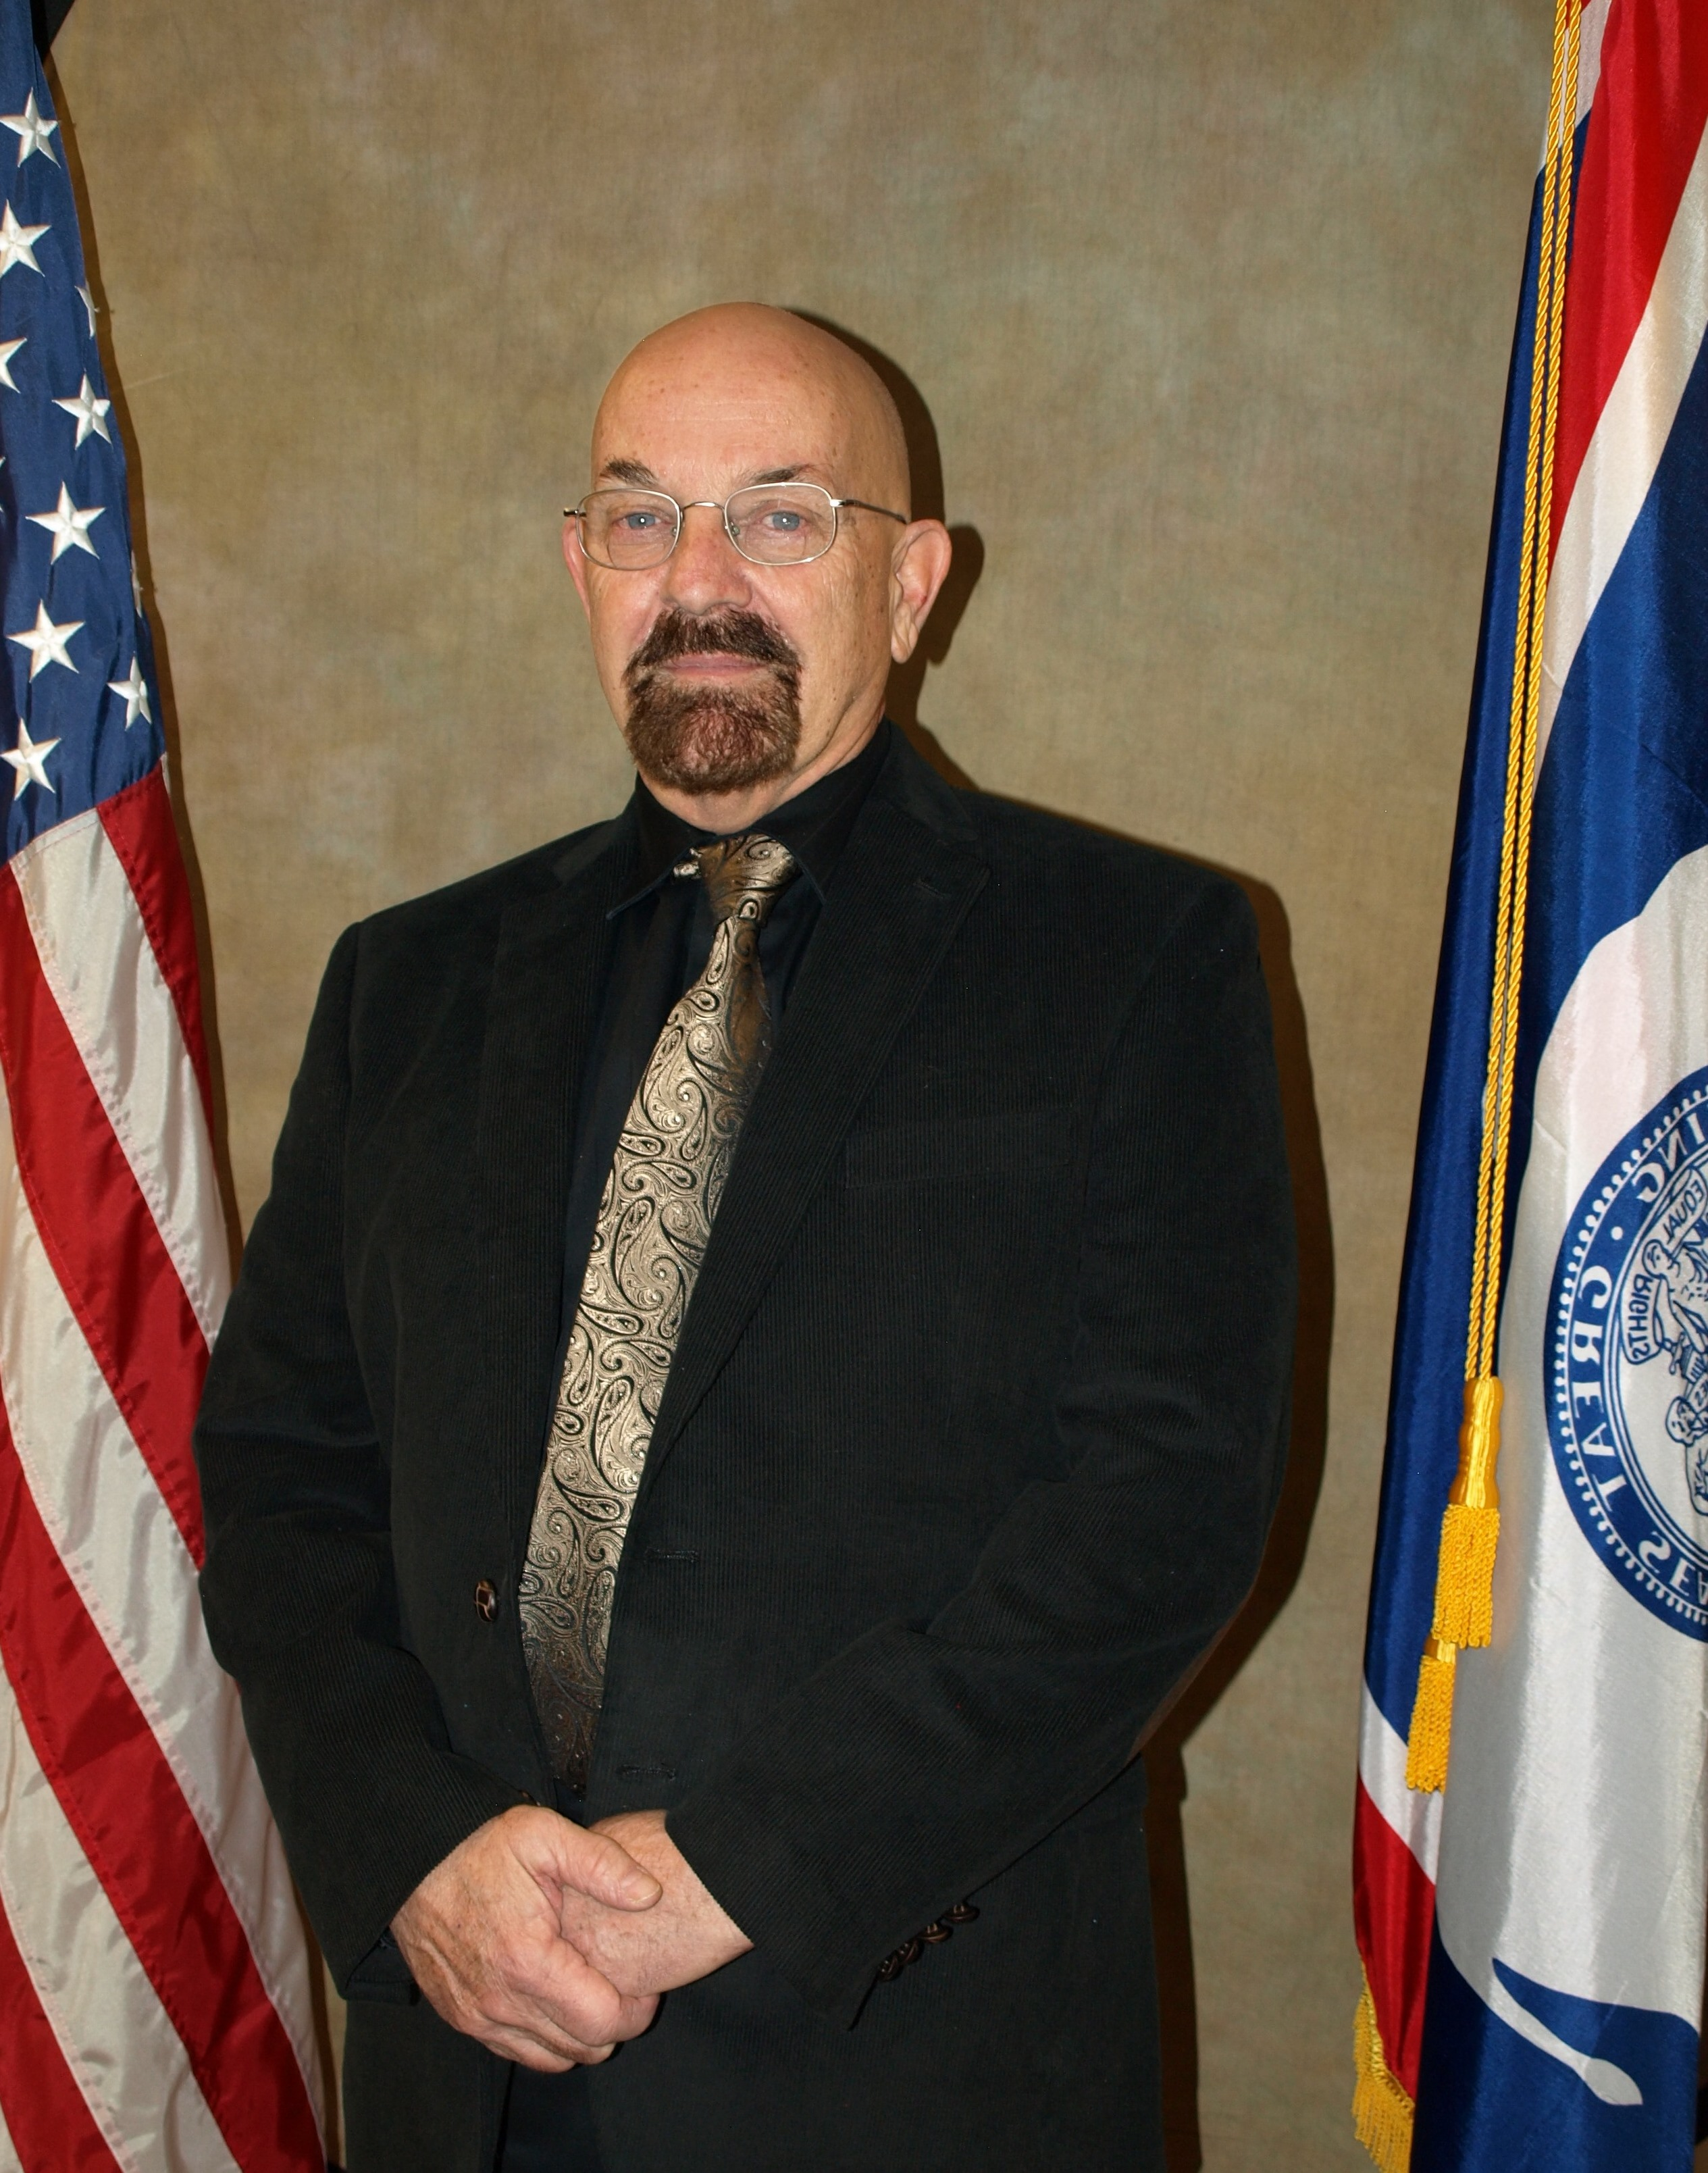 Mayor Rust